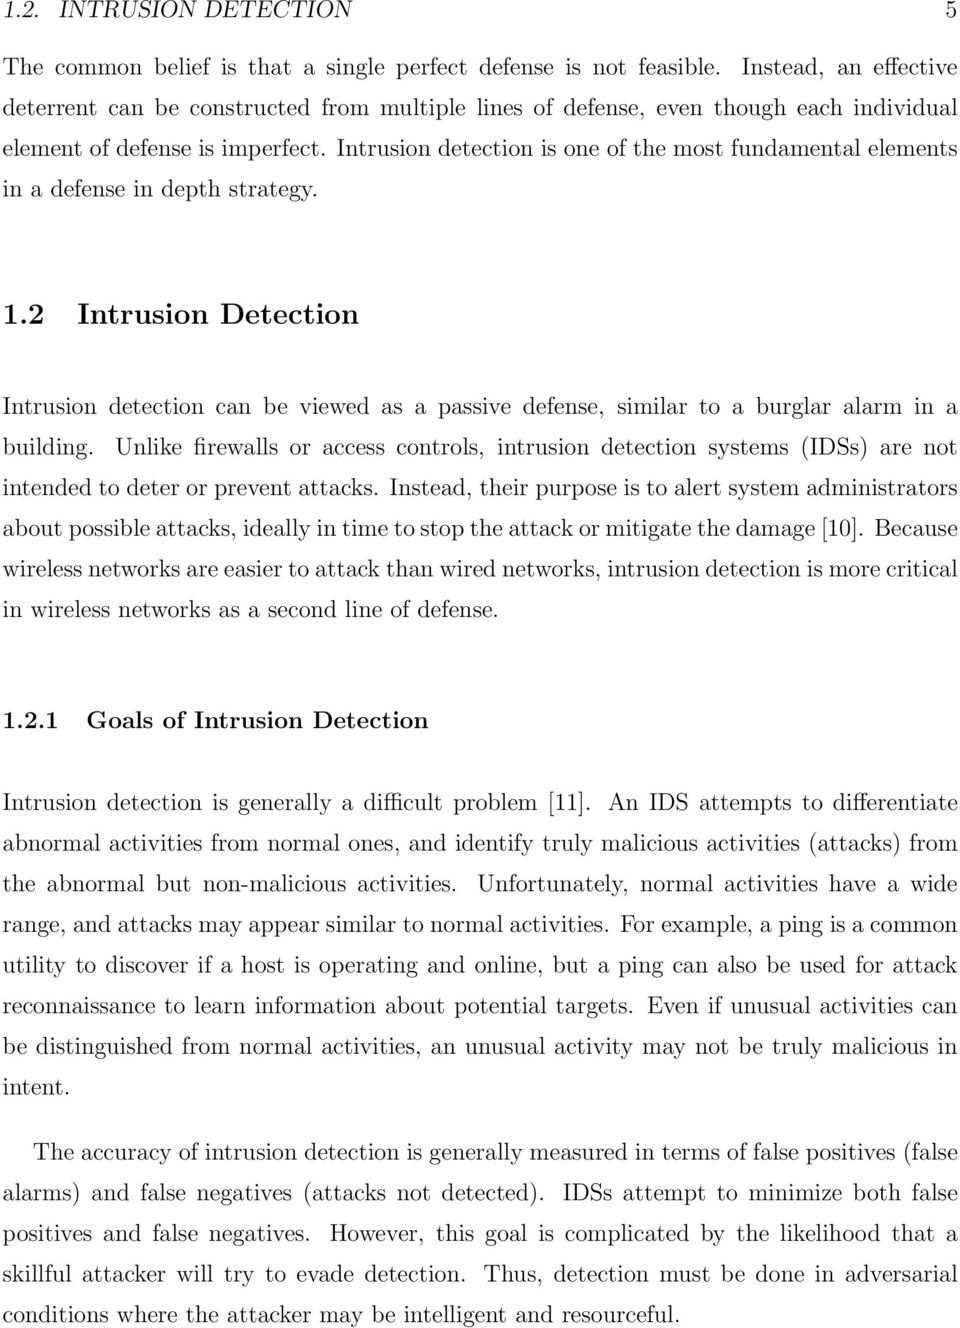 Intrusion Detection In Wireless Mesh Pdf Free Download